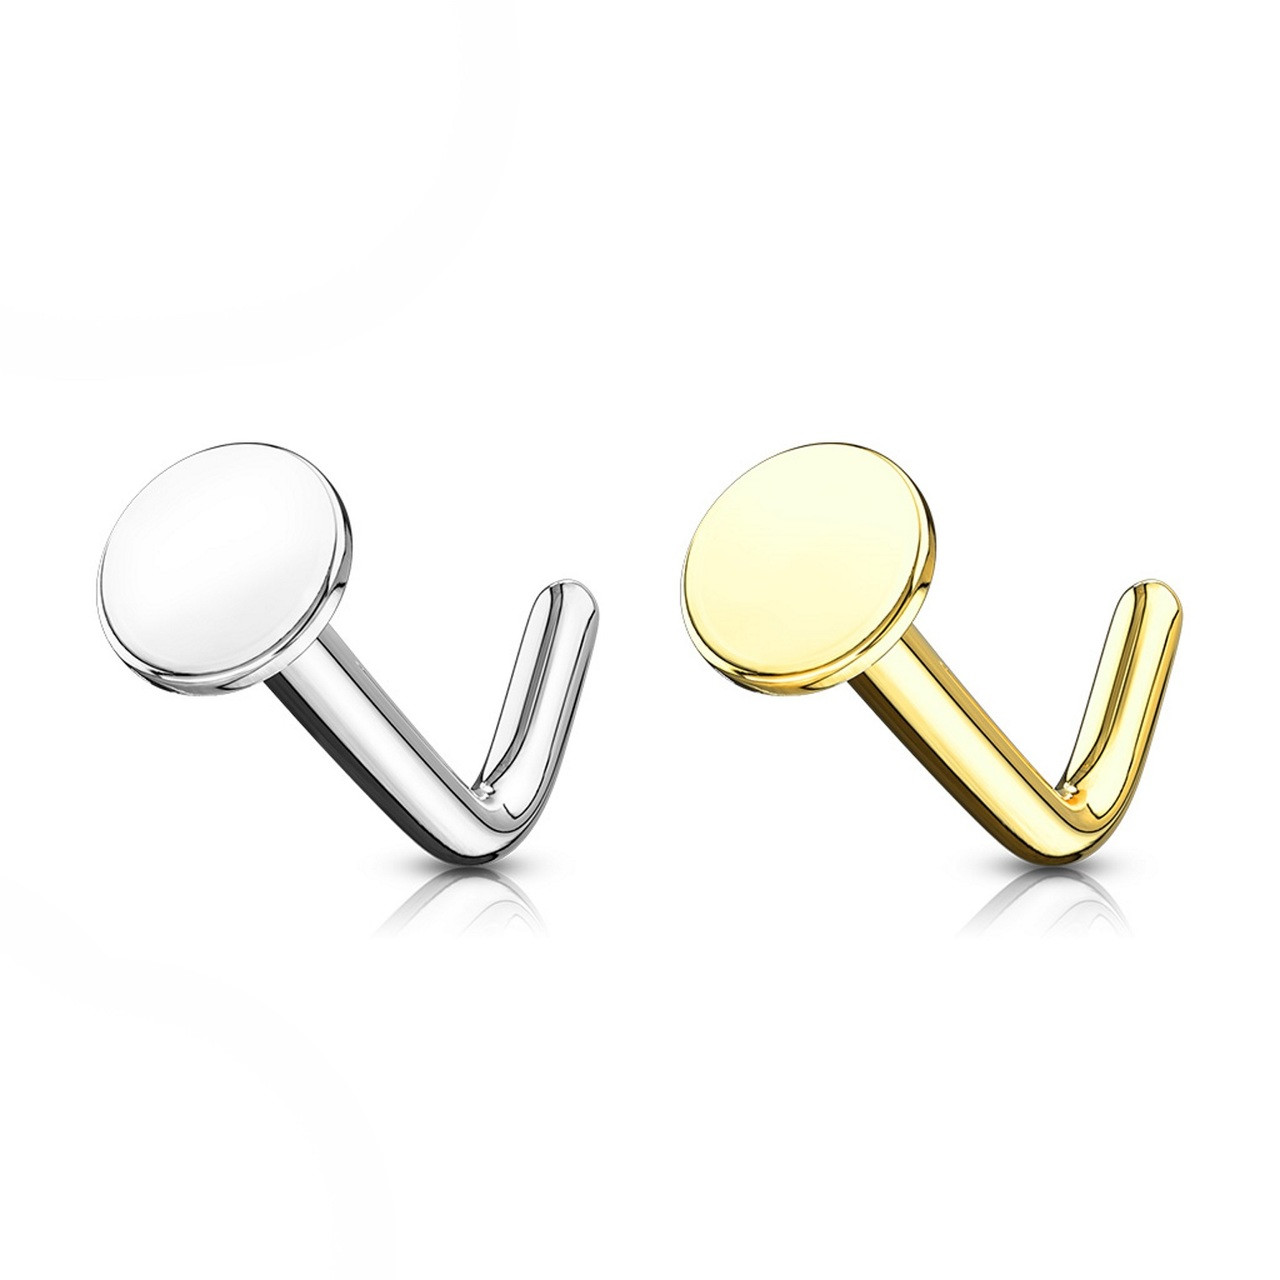 14kt Flat Top L Shaped Nose Ring 20g 1 4 Bodydazz Com